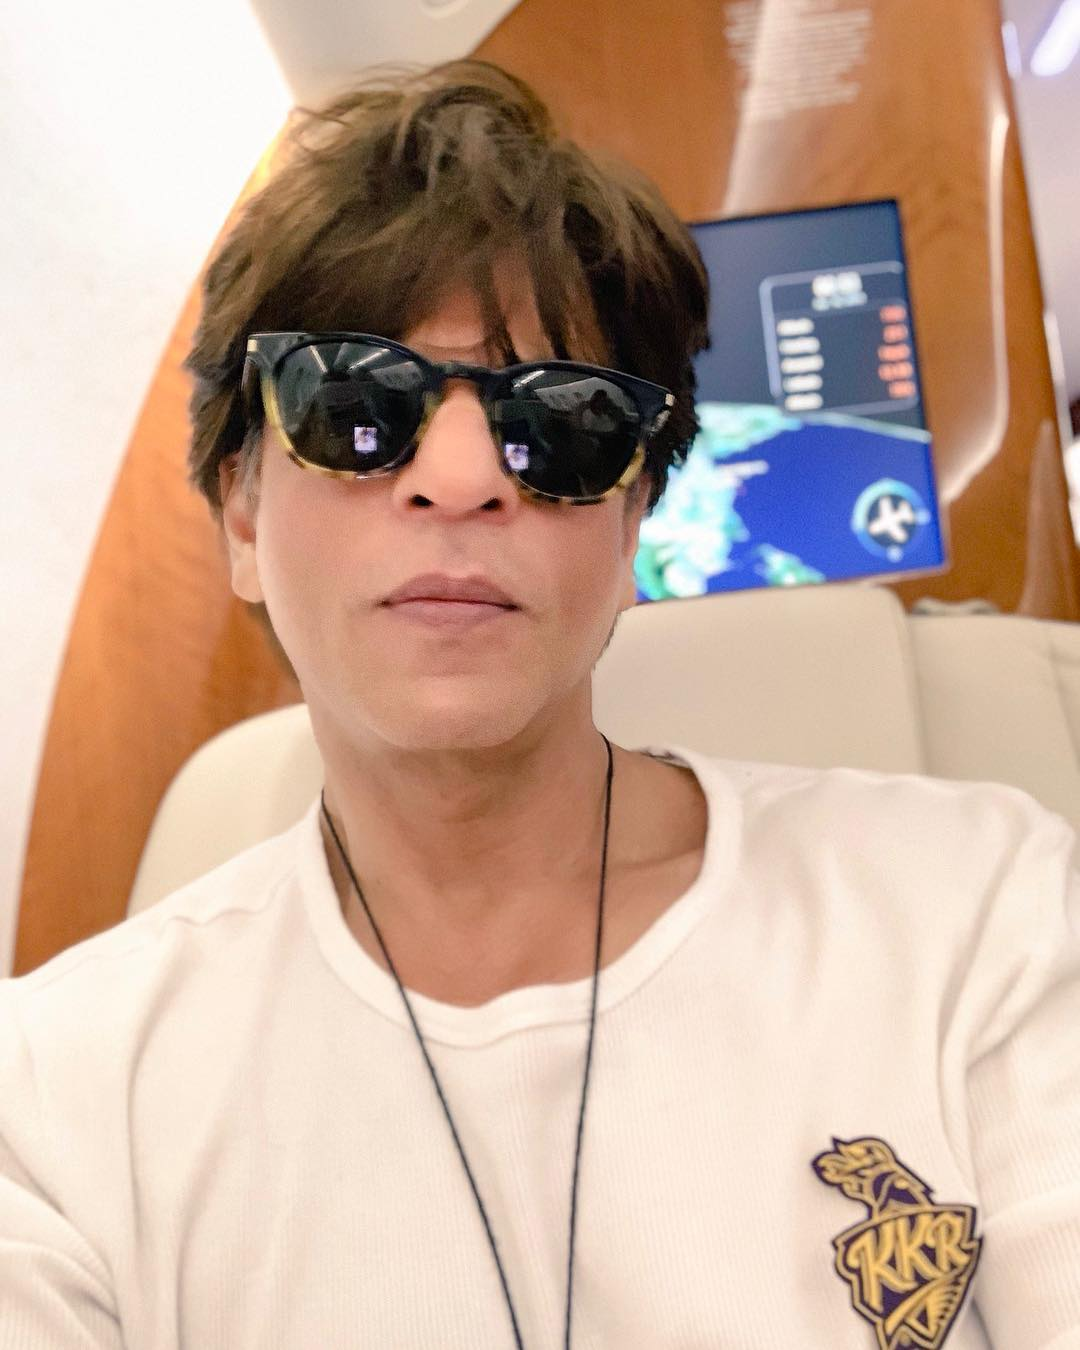 First Salaries Of These B-Town Stars Will Surprise You - shah rukh khan